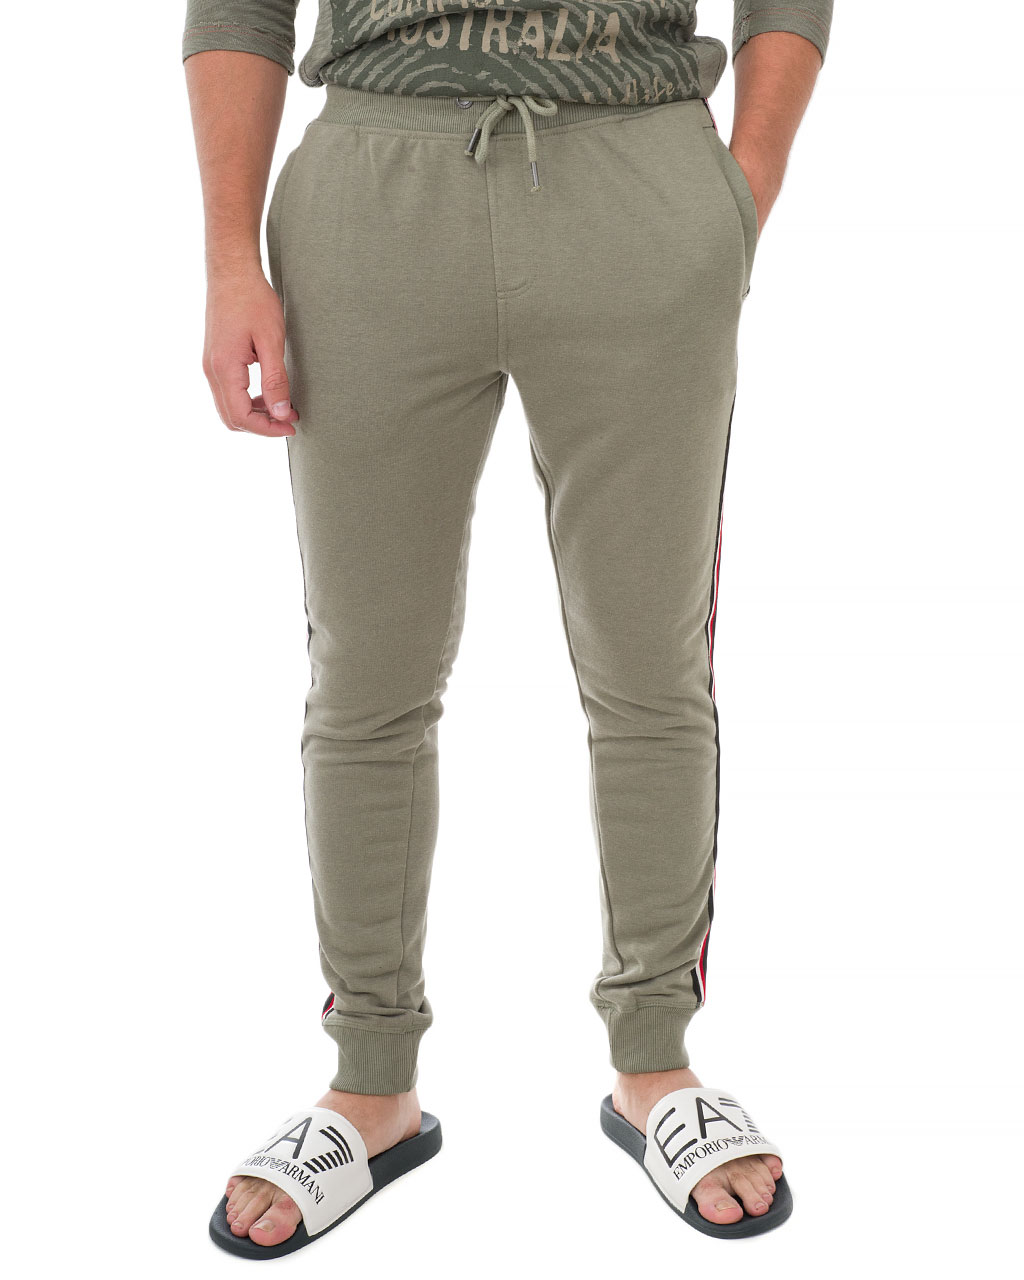 Men's trousers 20708030-77193/91 (5)